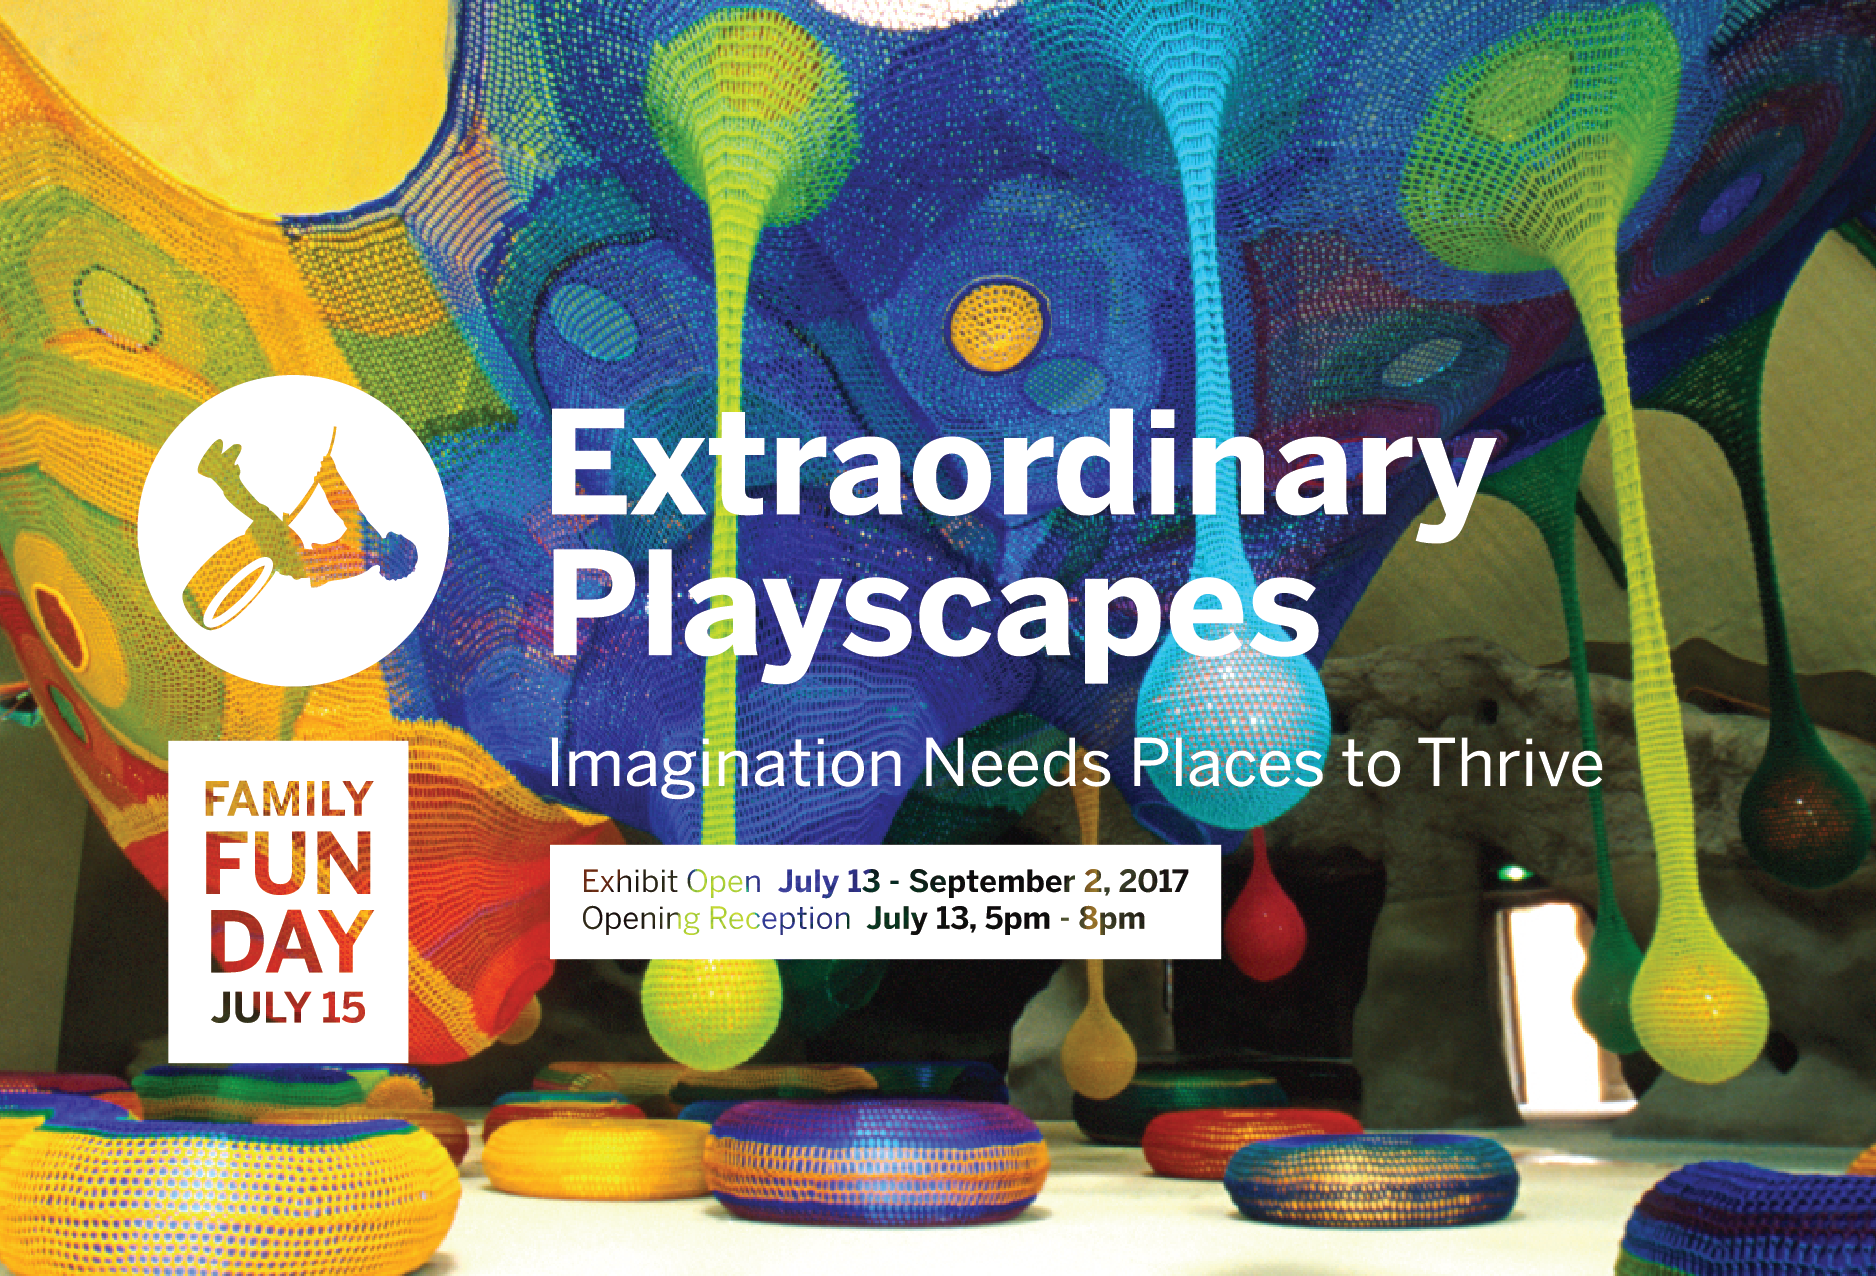 In conjunction with our Exhibit Extraordinary Playscapes we are inviting families to join us in a day of creative play at the Center for Architecture & Design on July 15th from 11-4pm.